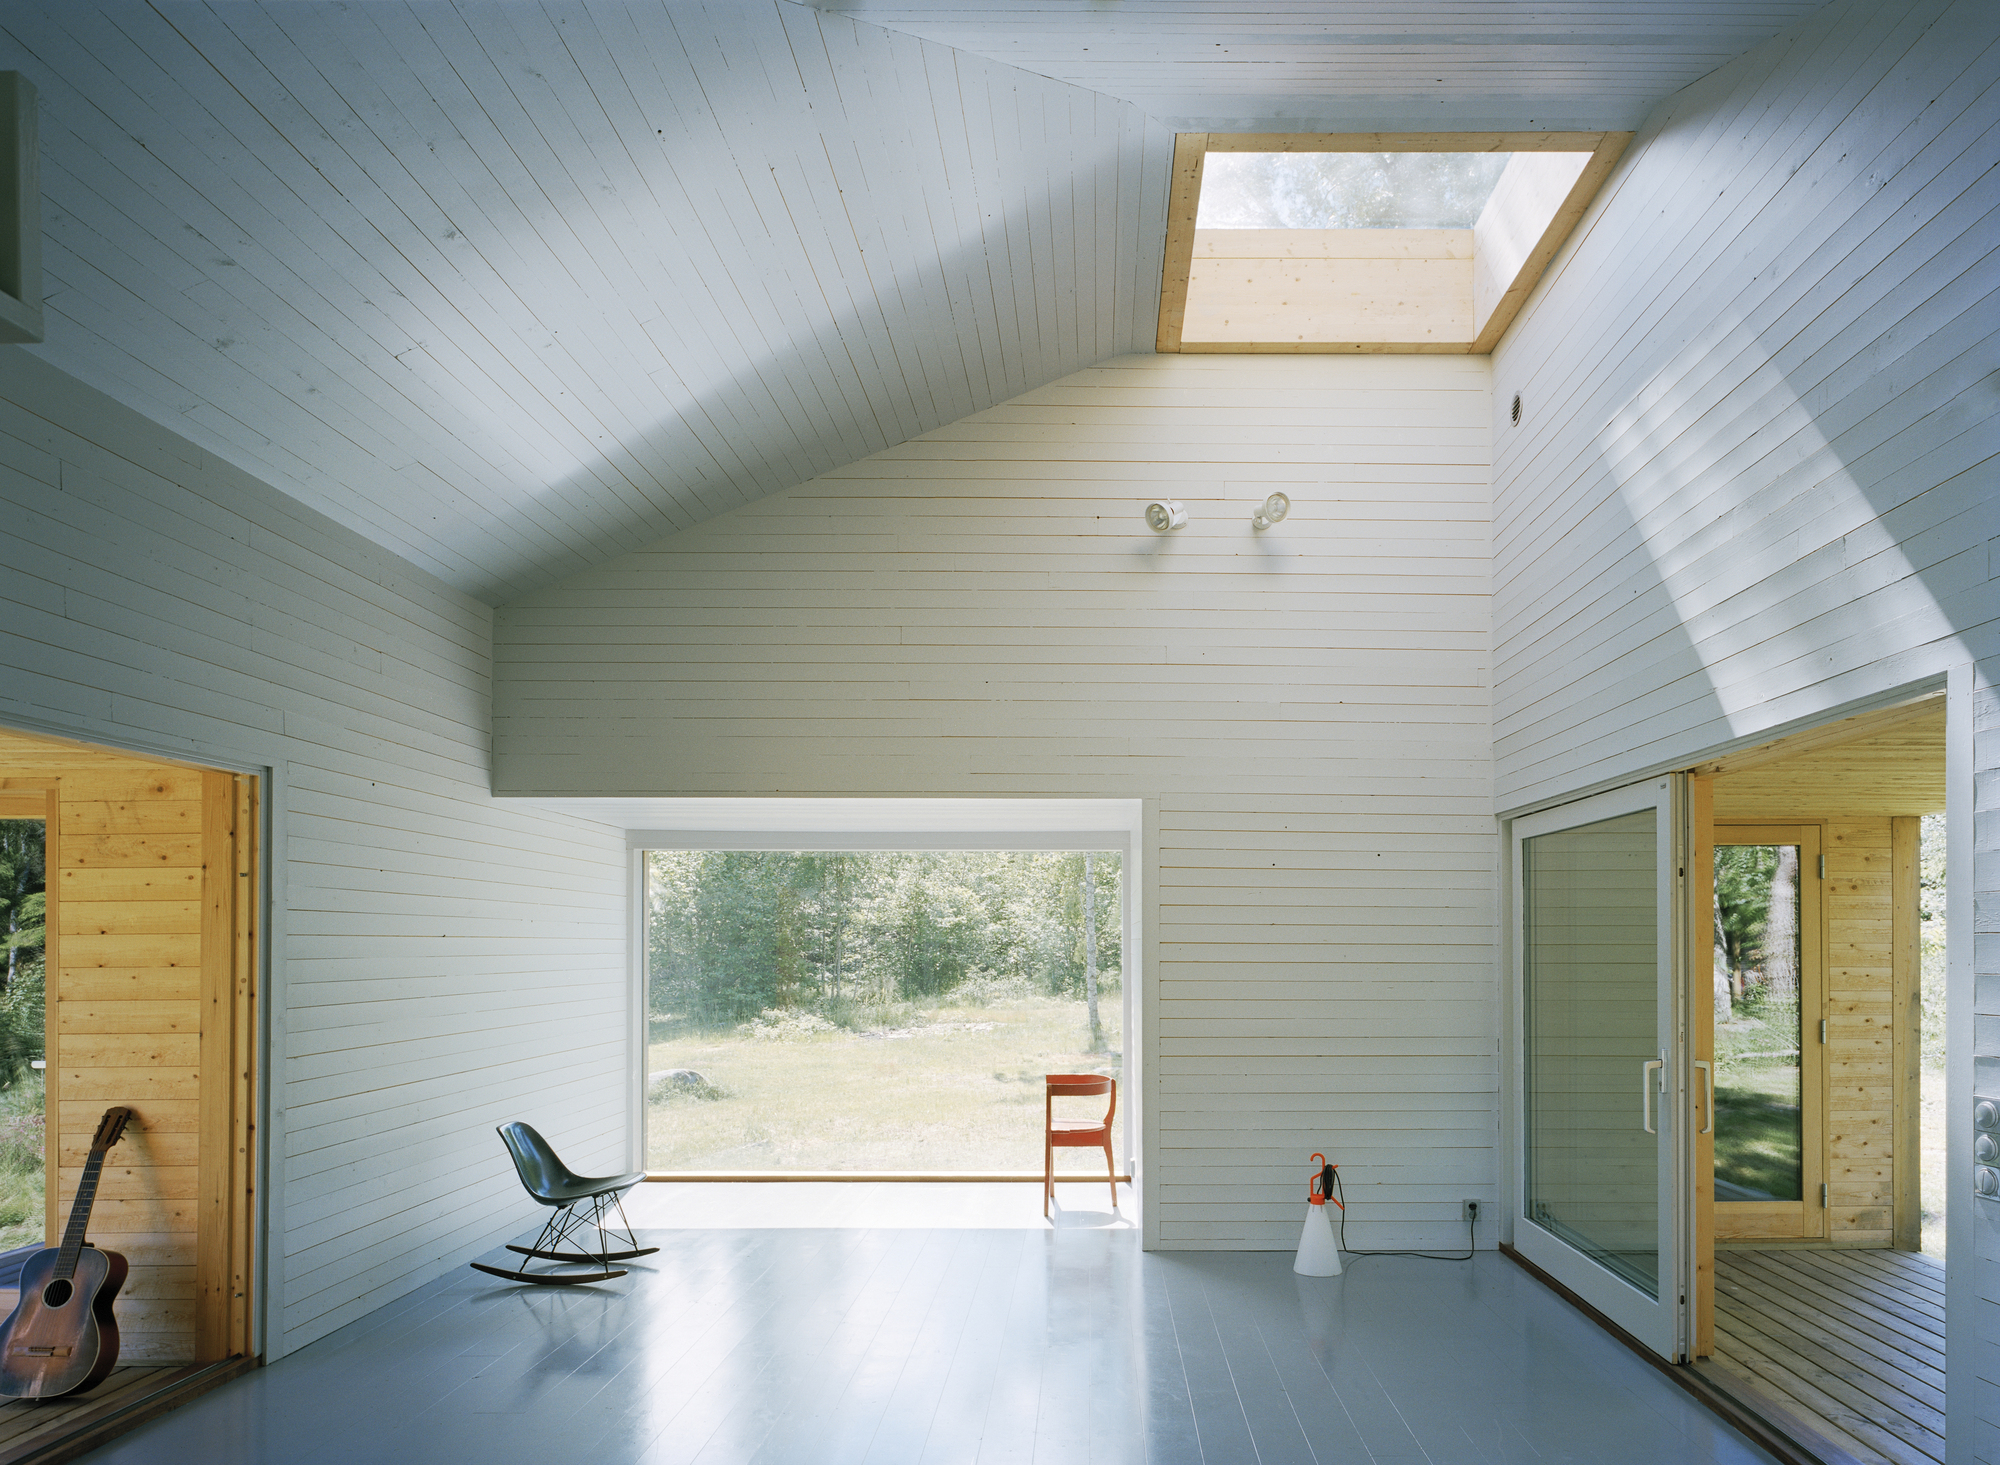 Central skylight brings ample natural light into the small summer home